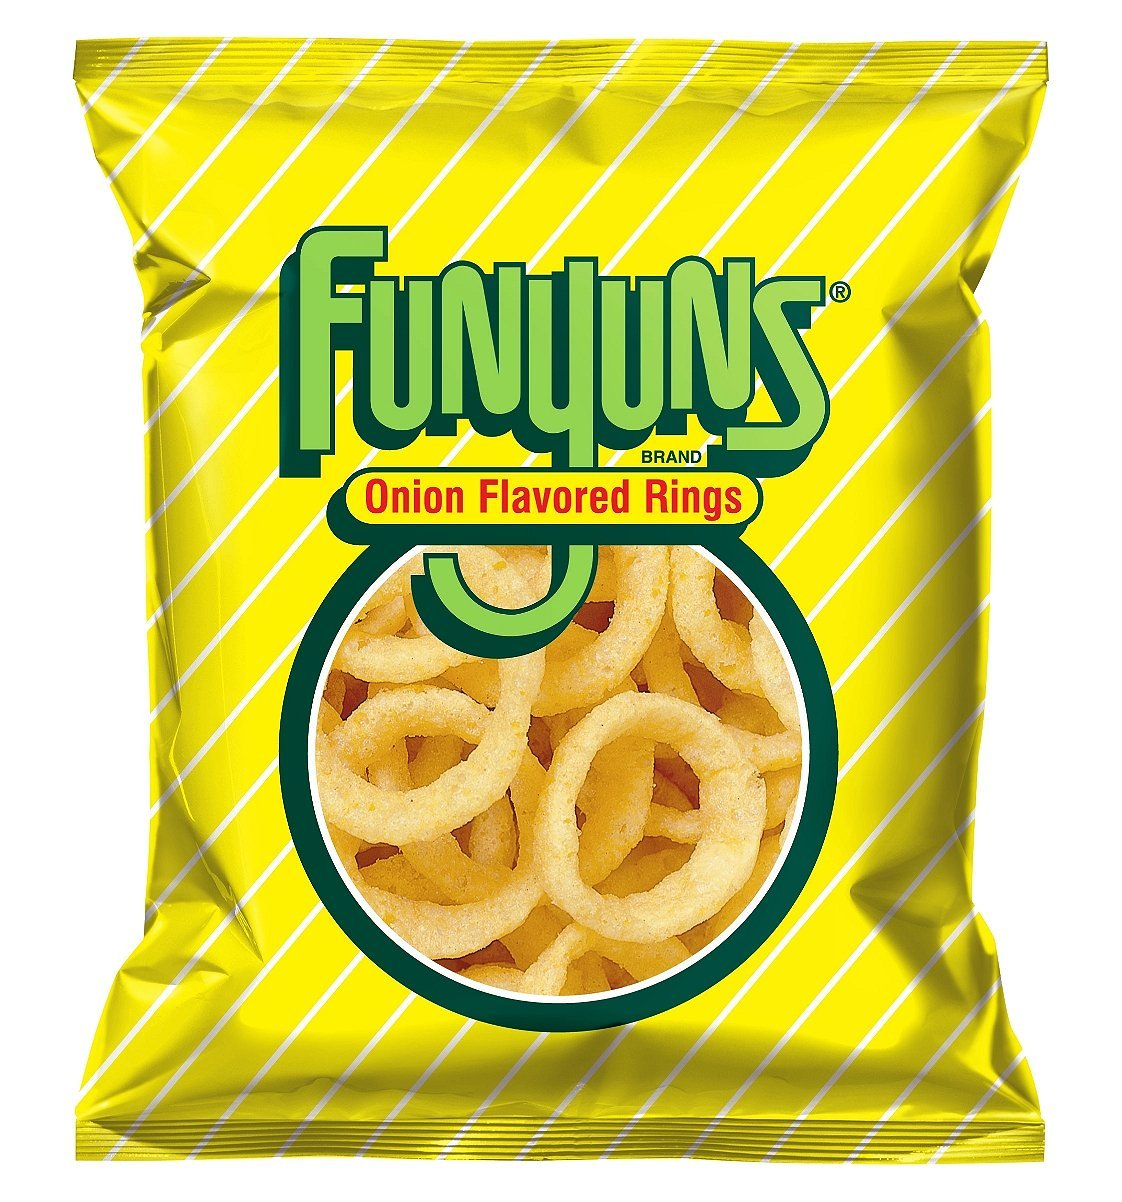 In praise of Funyuns, the secretly perfect snack